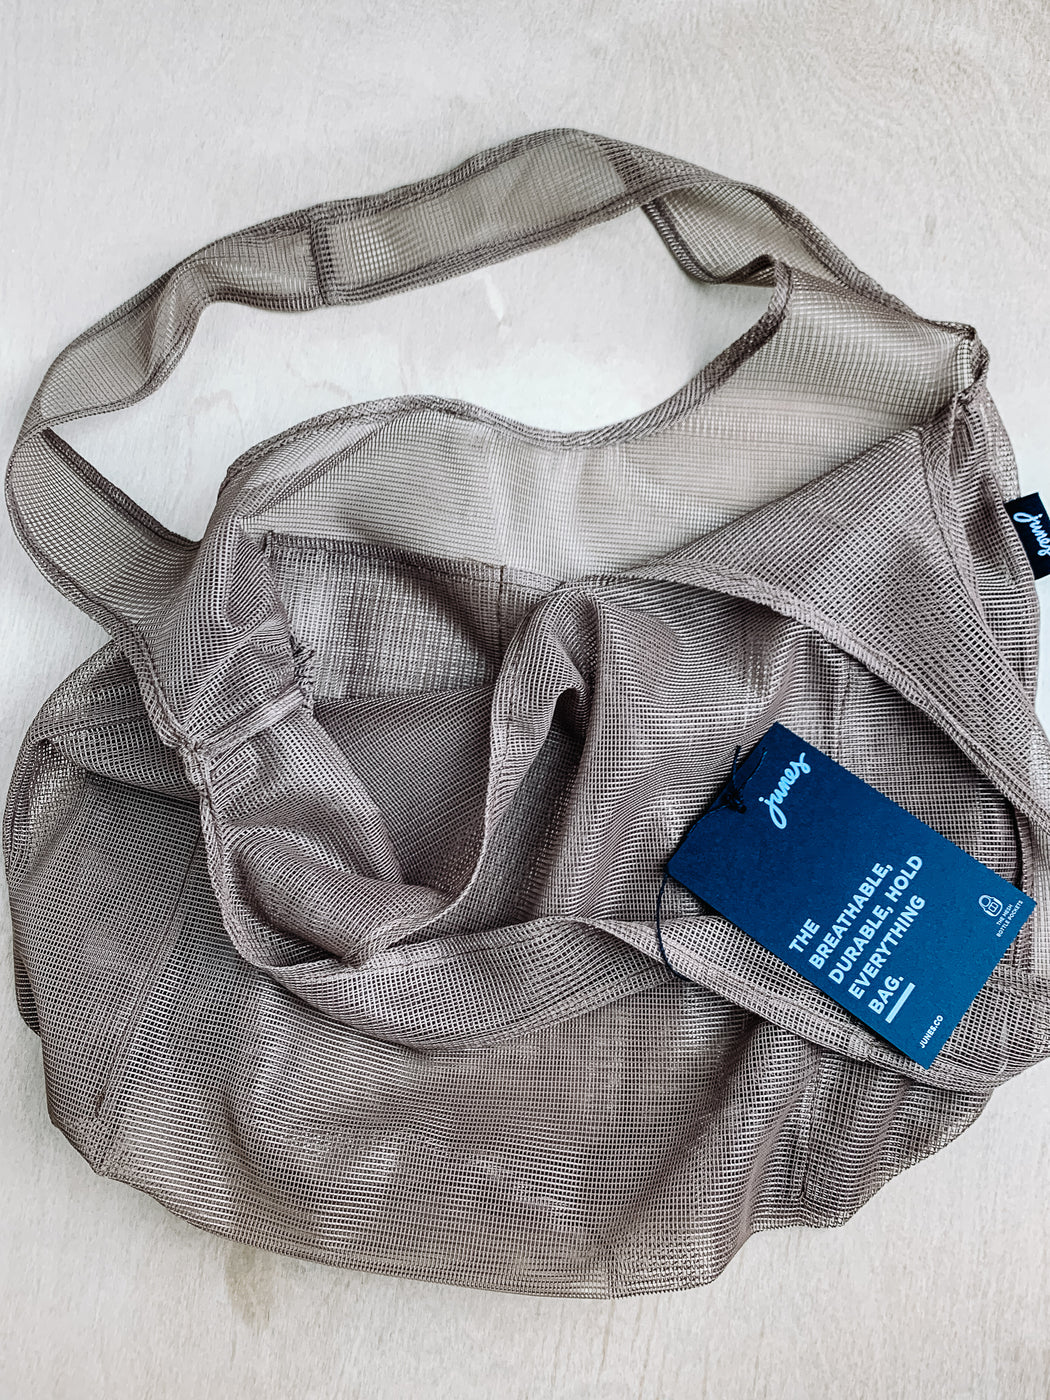 Junes Bags- Everyday Reusable Bag with Bottle Pockets